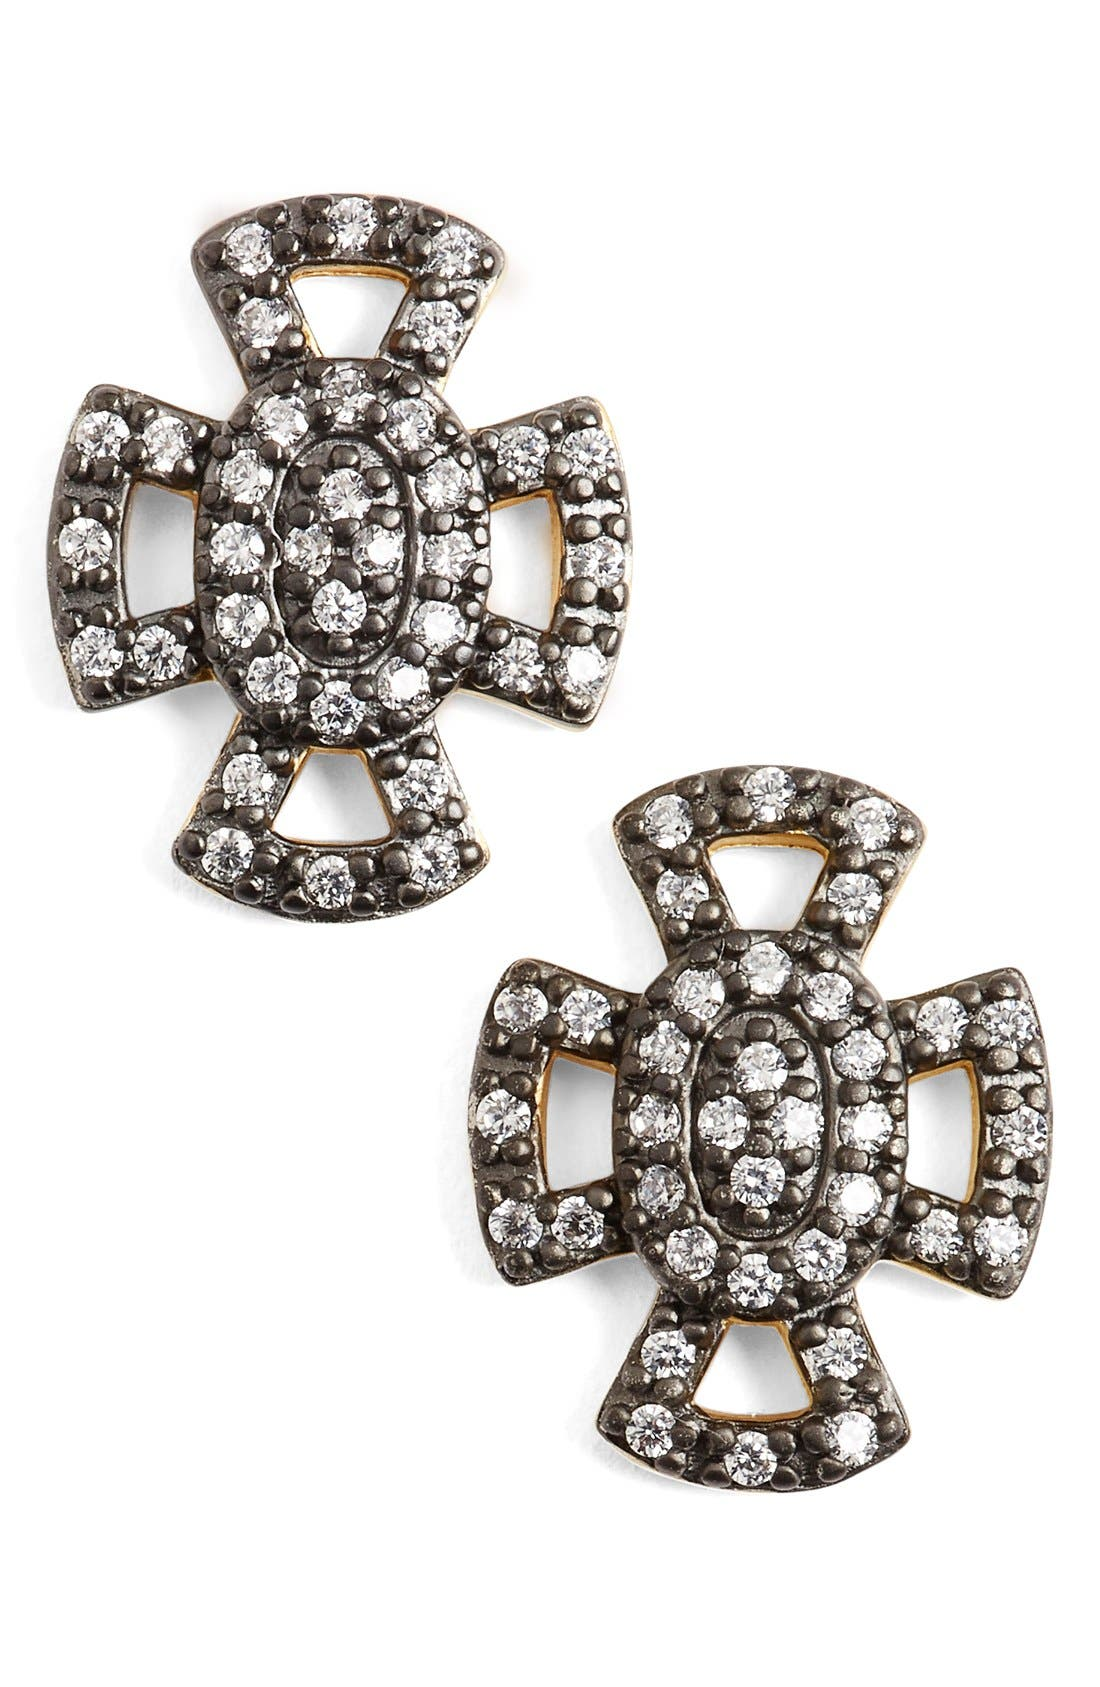 FREIDA ROTHMAN 'Metropolitan' Maltese Cross Stud Earrings